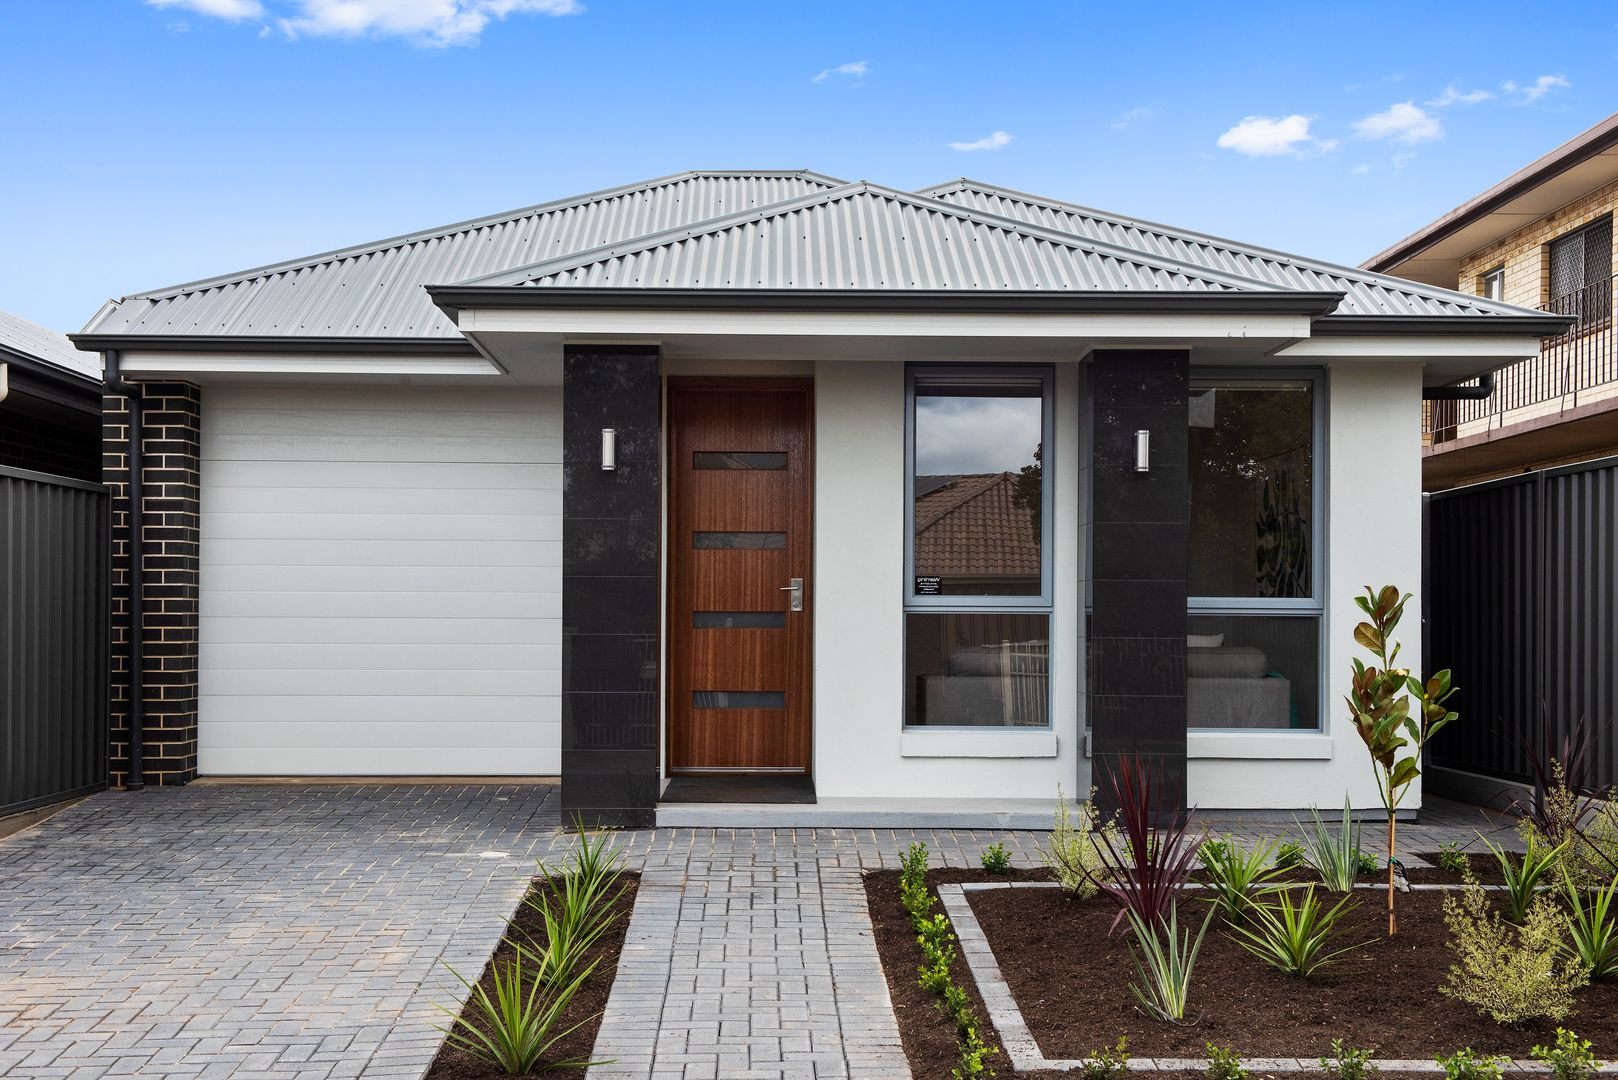 Lot 2, Num.12 Sweetwater Street, Seacombe Gardens SA 5047, Image 0